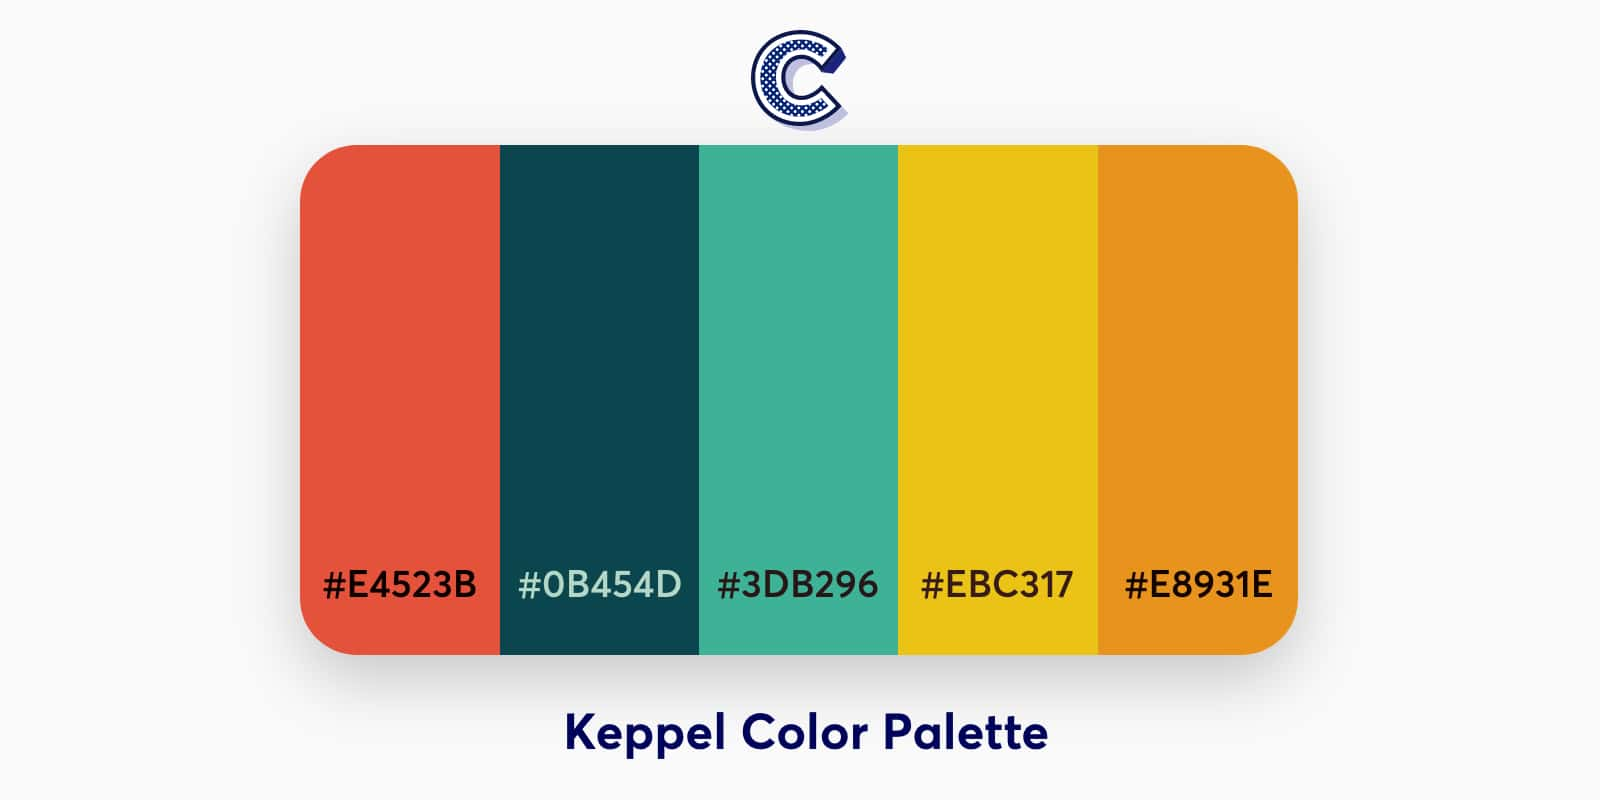 the featured image of keppel color palette